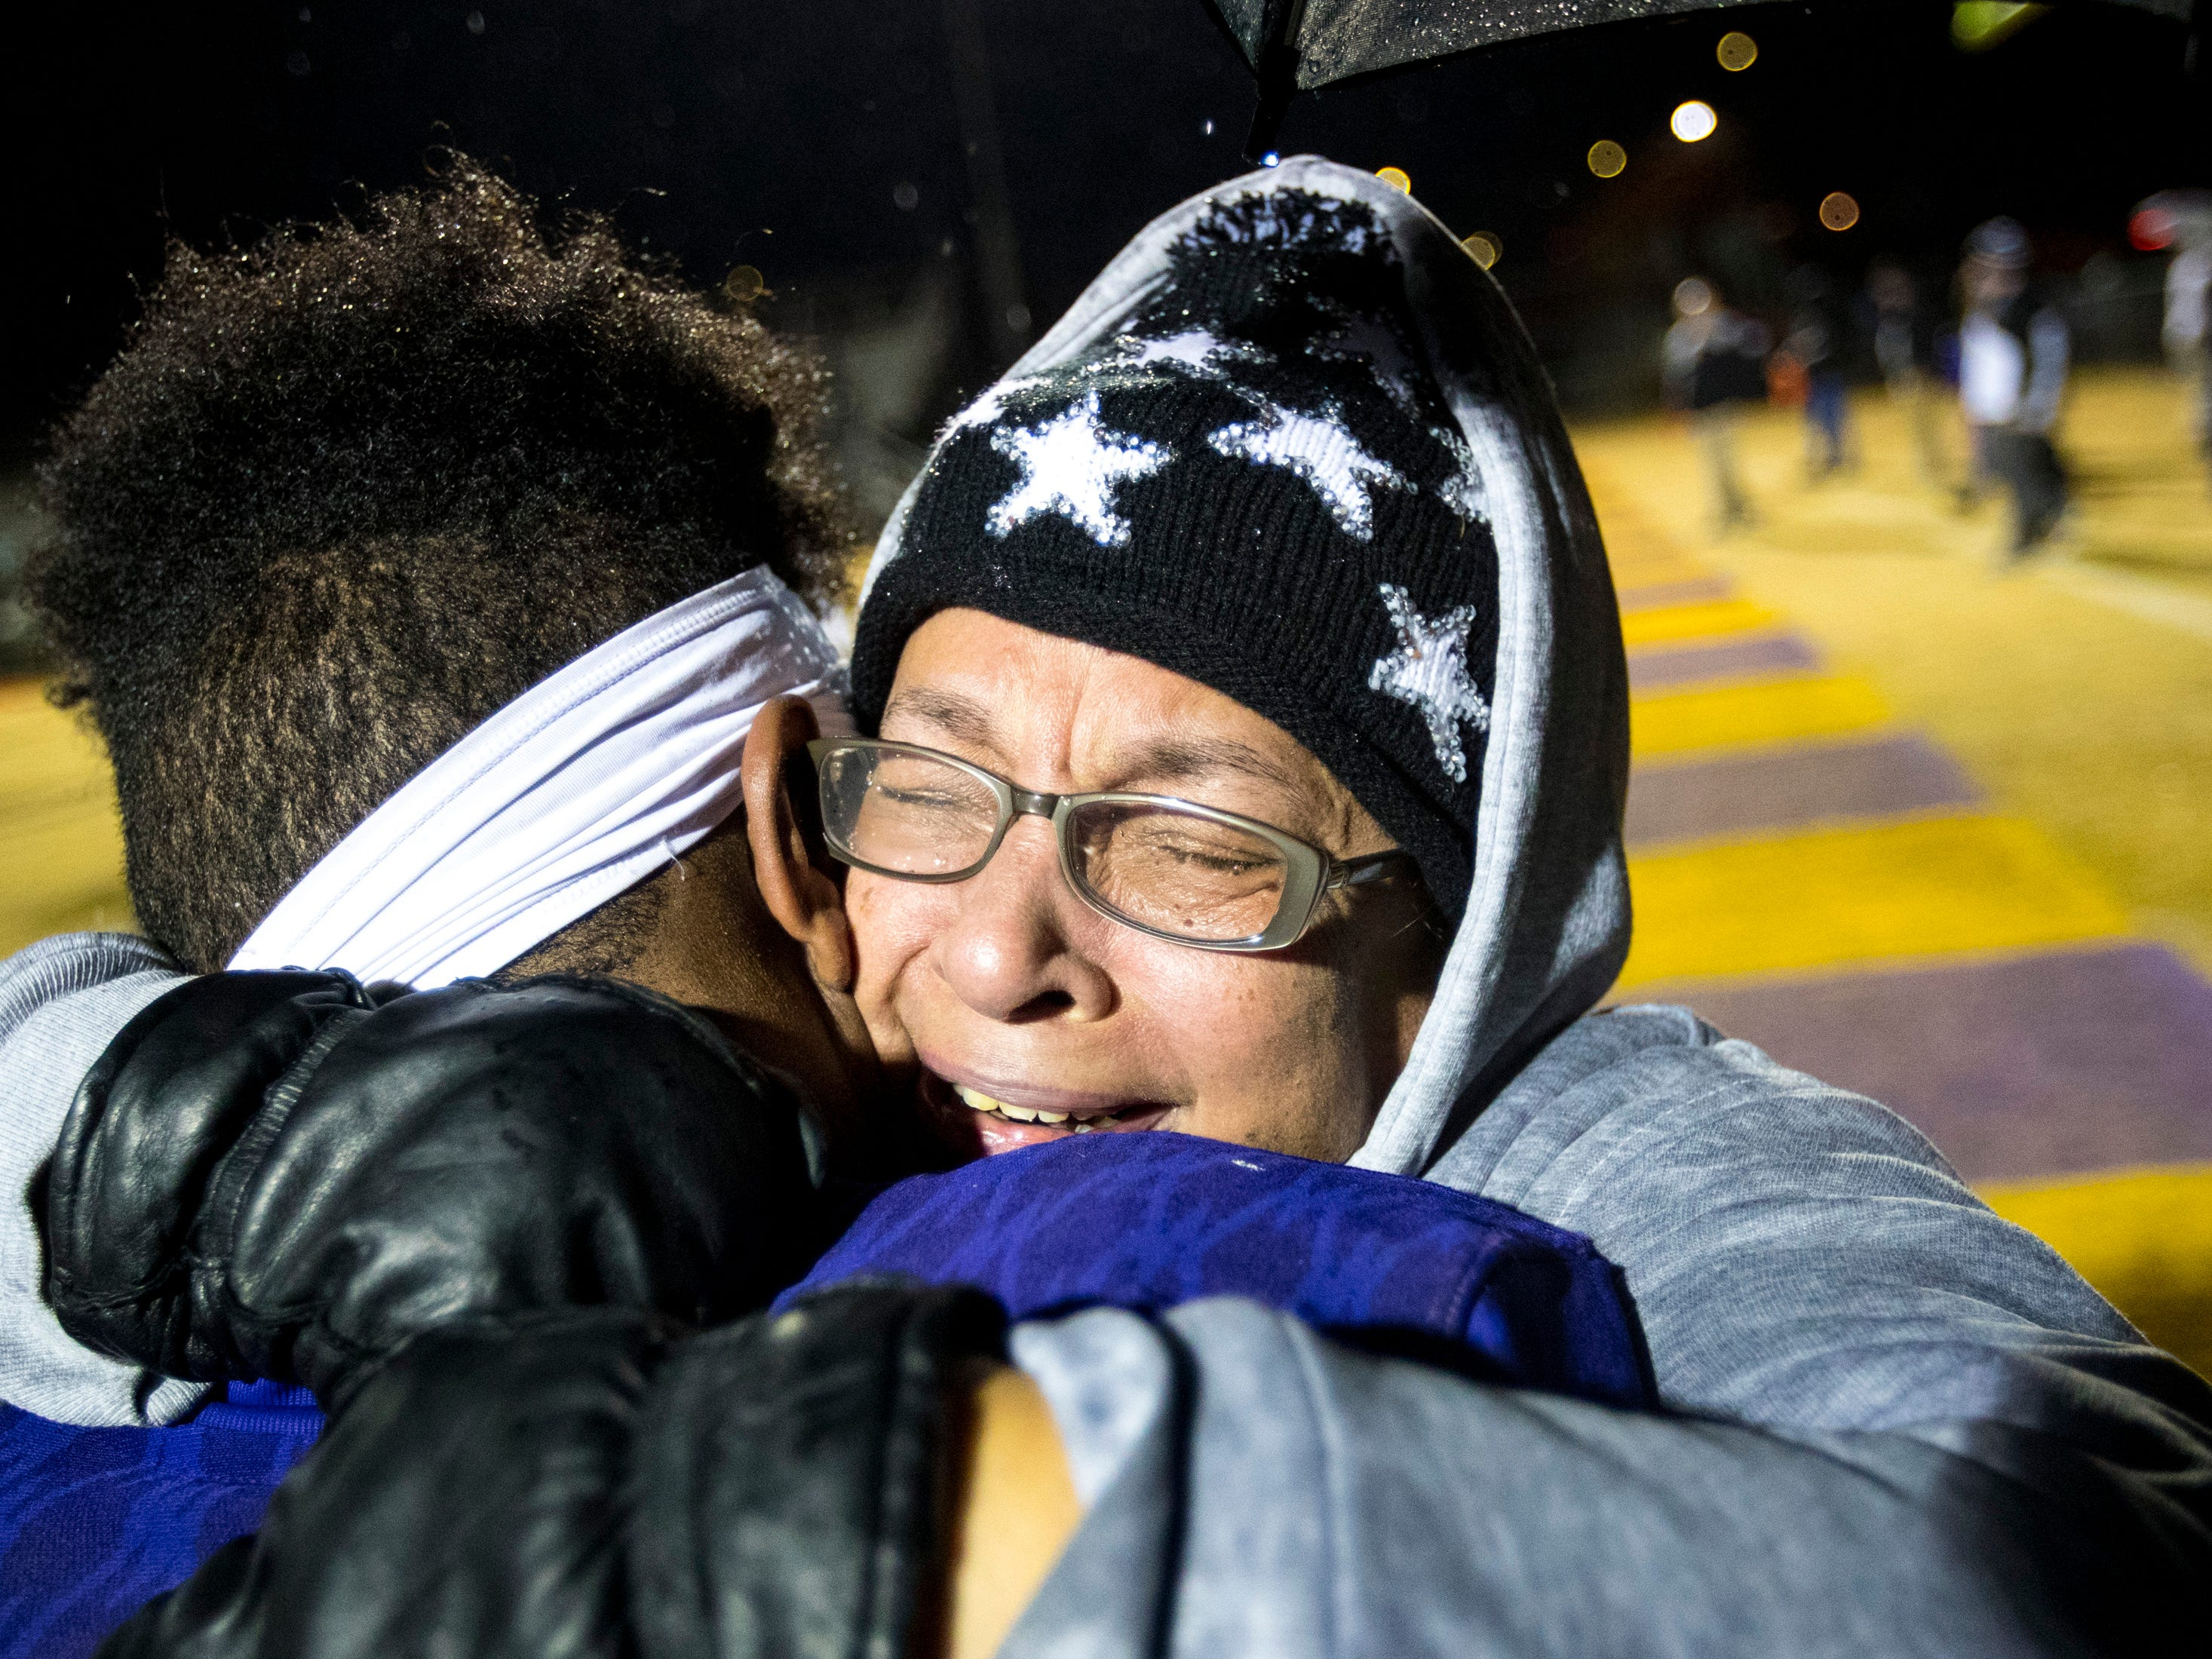 Elaine Walton hugs her grandson Trousdale County's Dyson Satterfield (21) after Trousdale County's game against Meigs County at Jim Satterfield Stadium in Hartsville on Friday, Nov. 23, 2018.